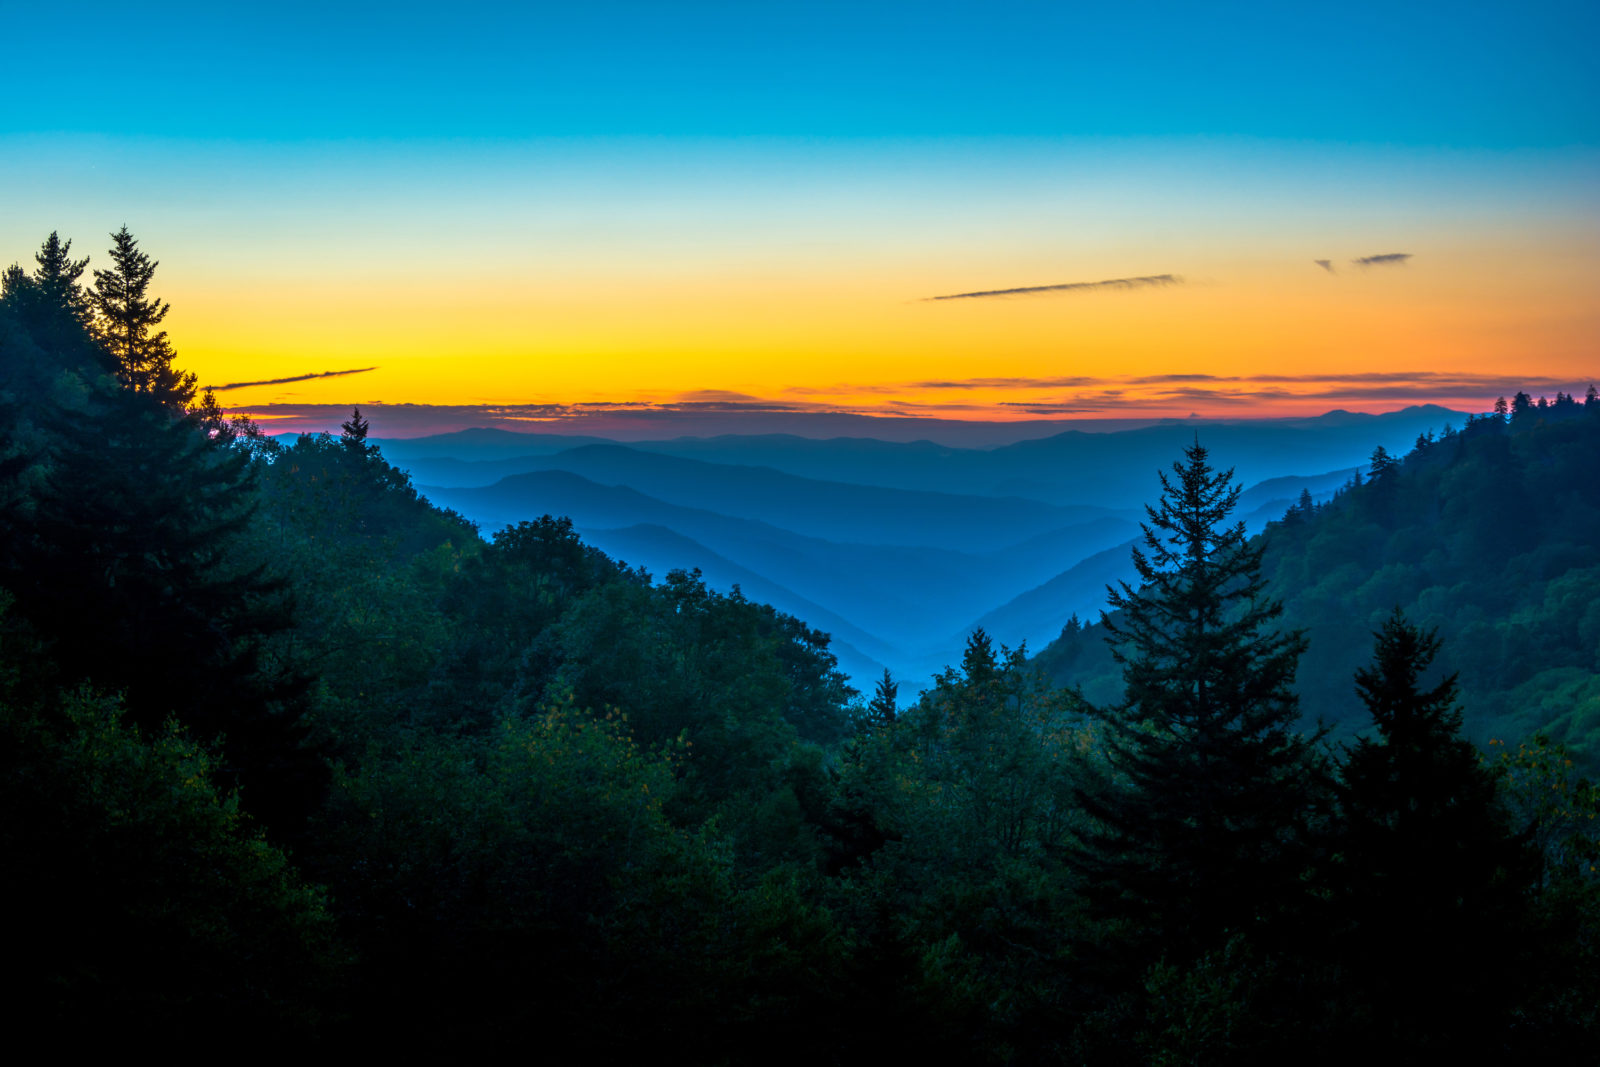 Sunrise at Newfound Gap